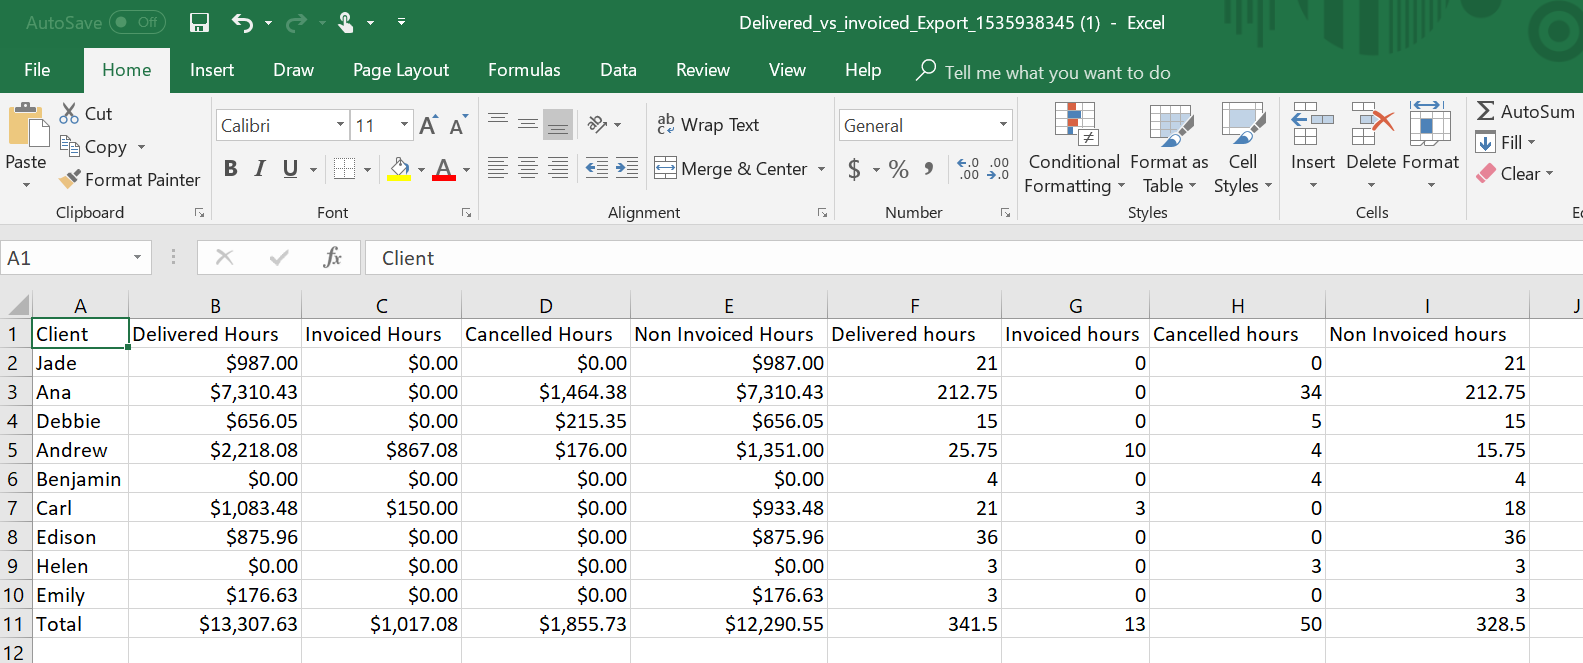 excel_doc.png